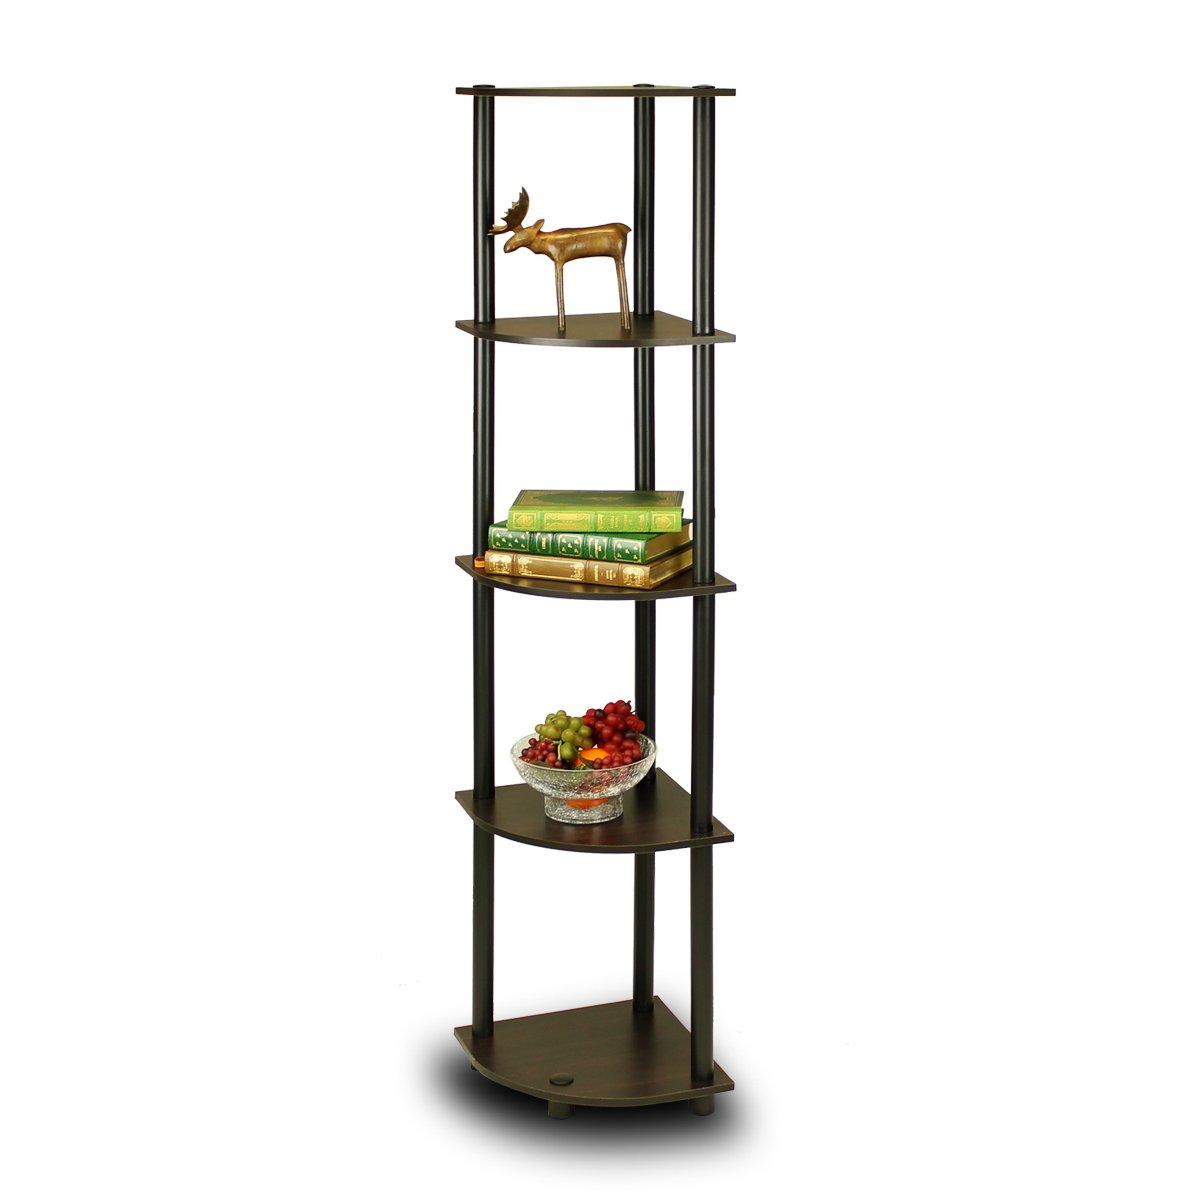 Furinno 99811EX/BK Turn N Tube 5 Tier Corner Shelf, Espresso/